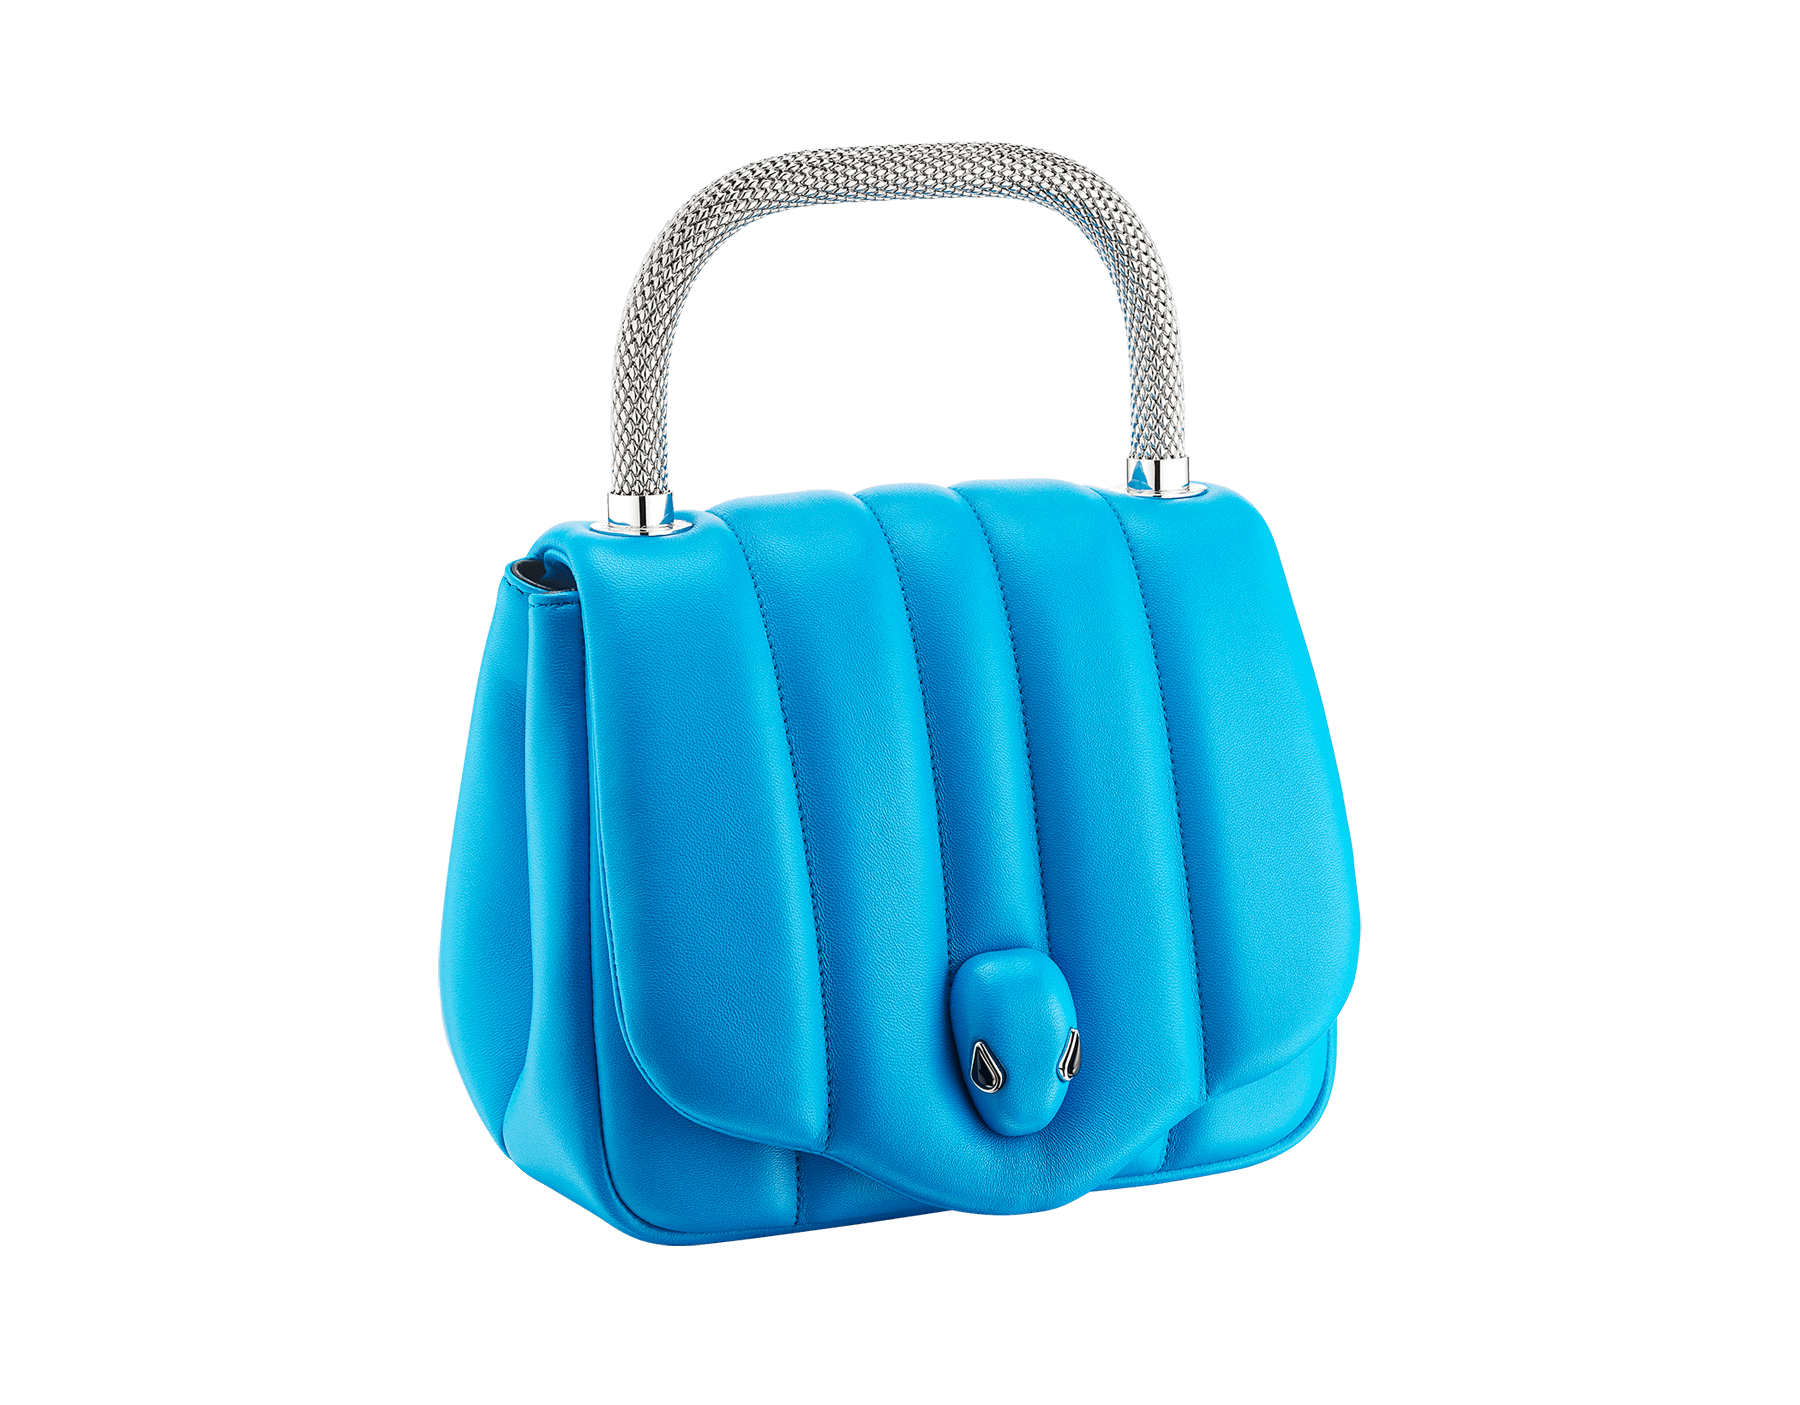 """Ambush x Bvlgari"" top handle bag in bright blue nappa leather. New Serpenti head closure in palladium plated brass dressed with bright blue nappa leather, finished with seductive black onyx eyes. Limited edition. 290344 image 2"